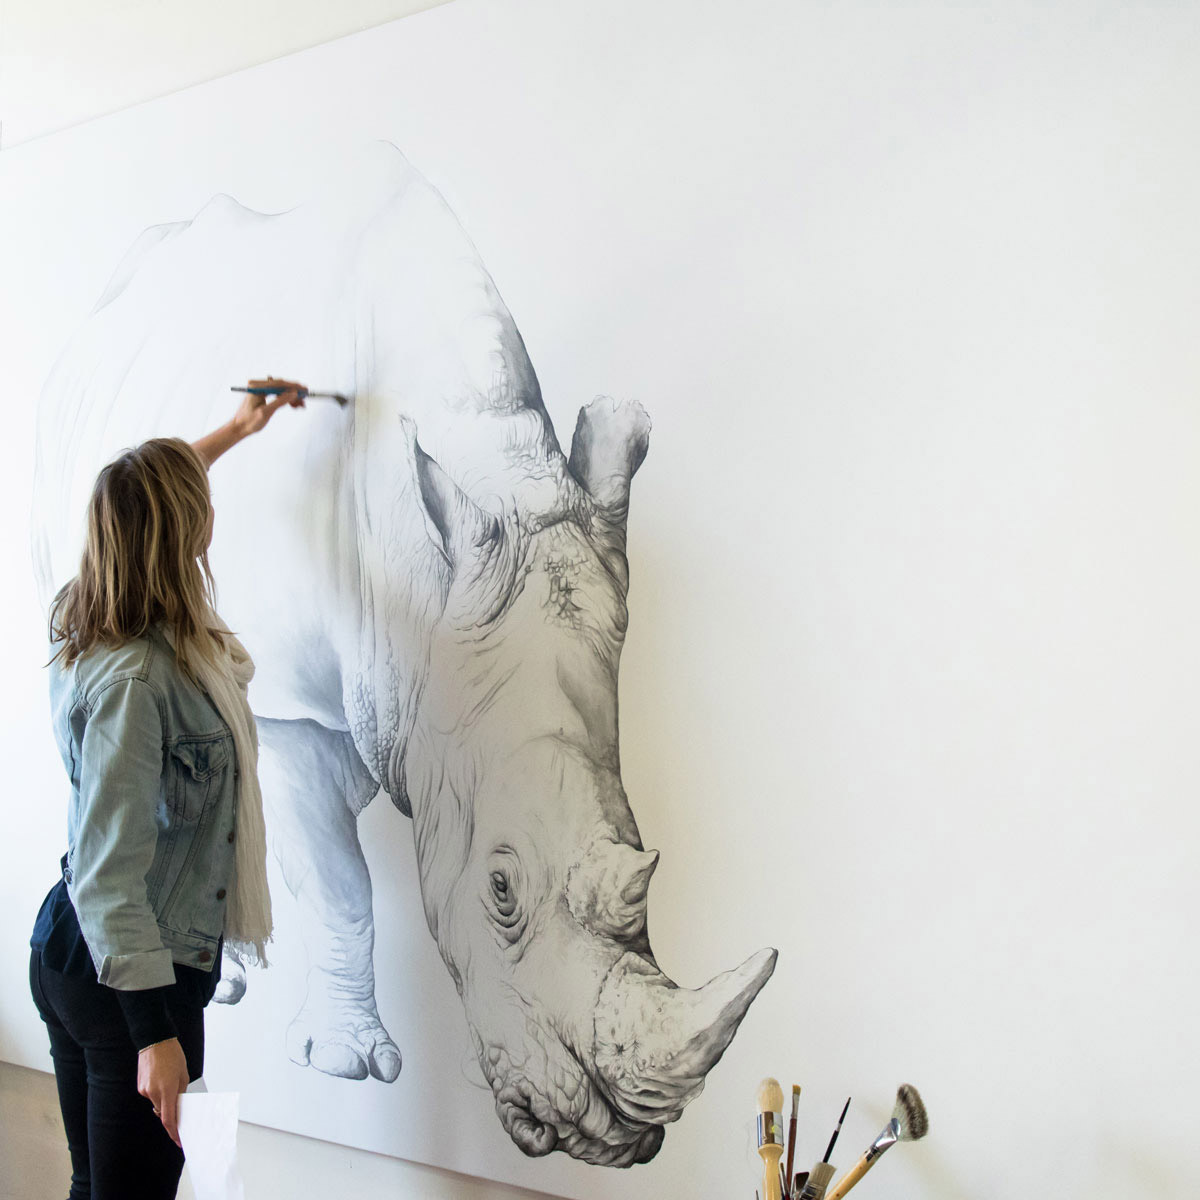 Sydney based artist Jaimee Paul documents her love of and connection with animals